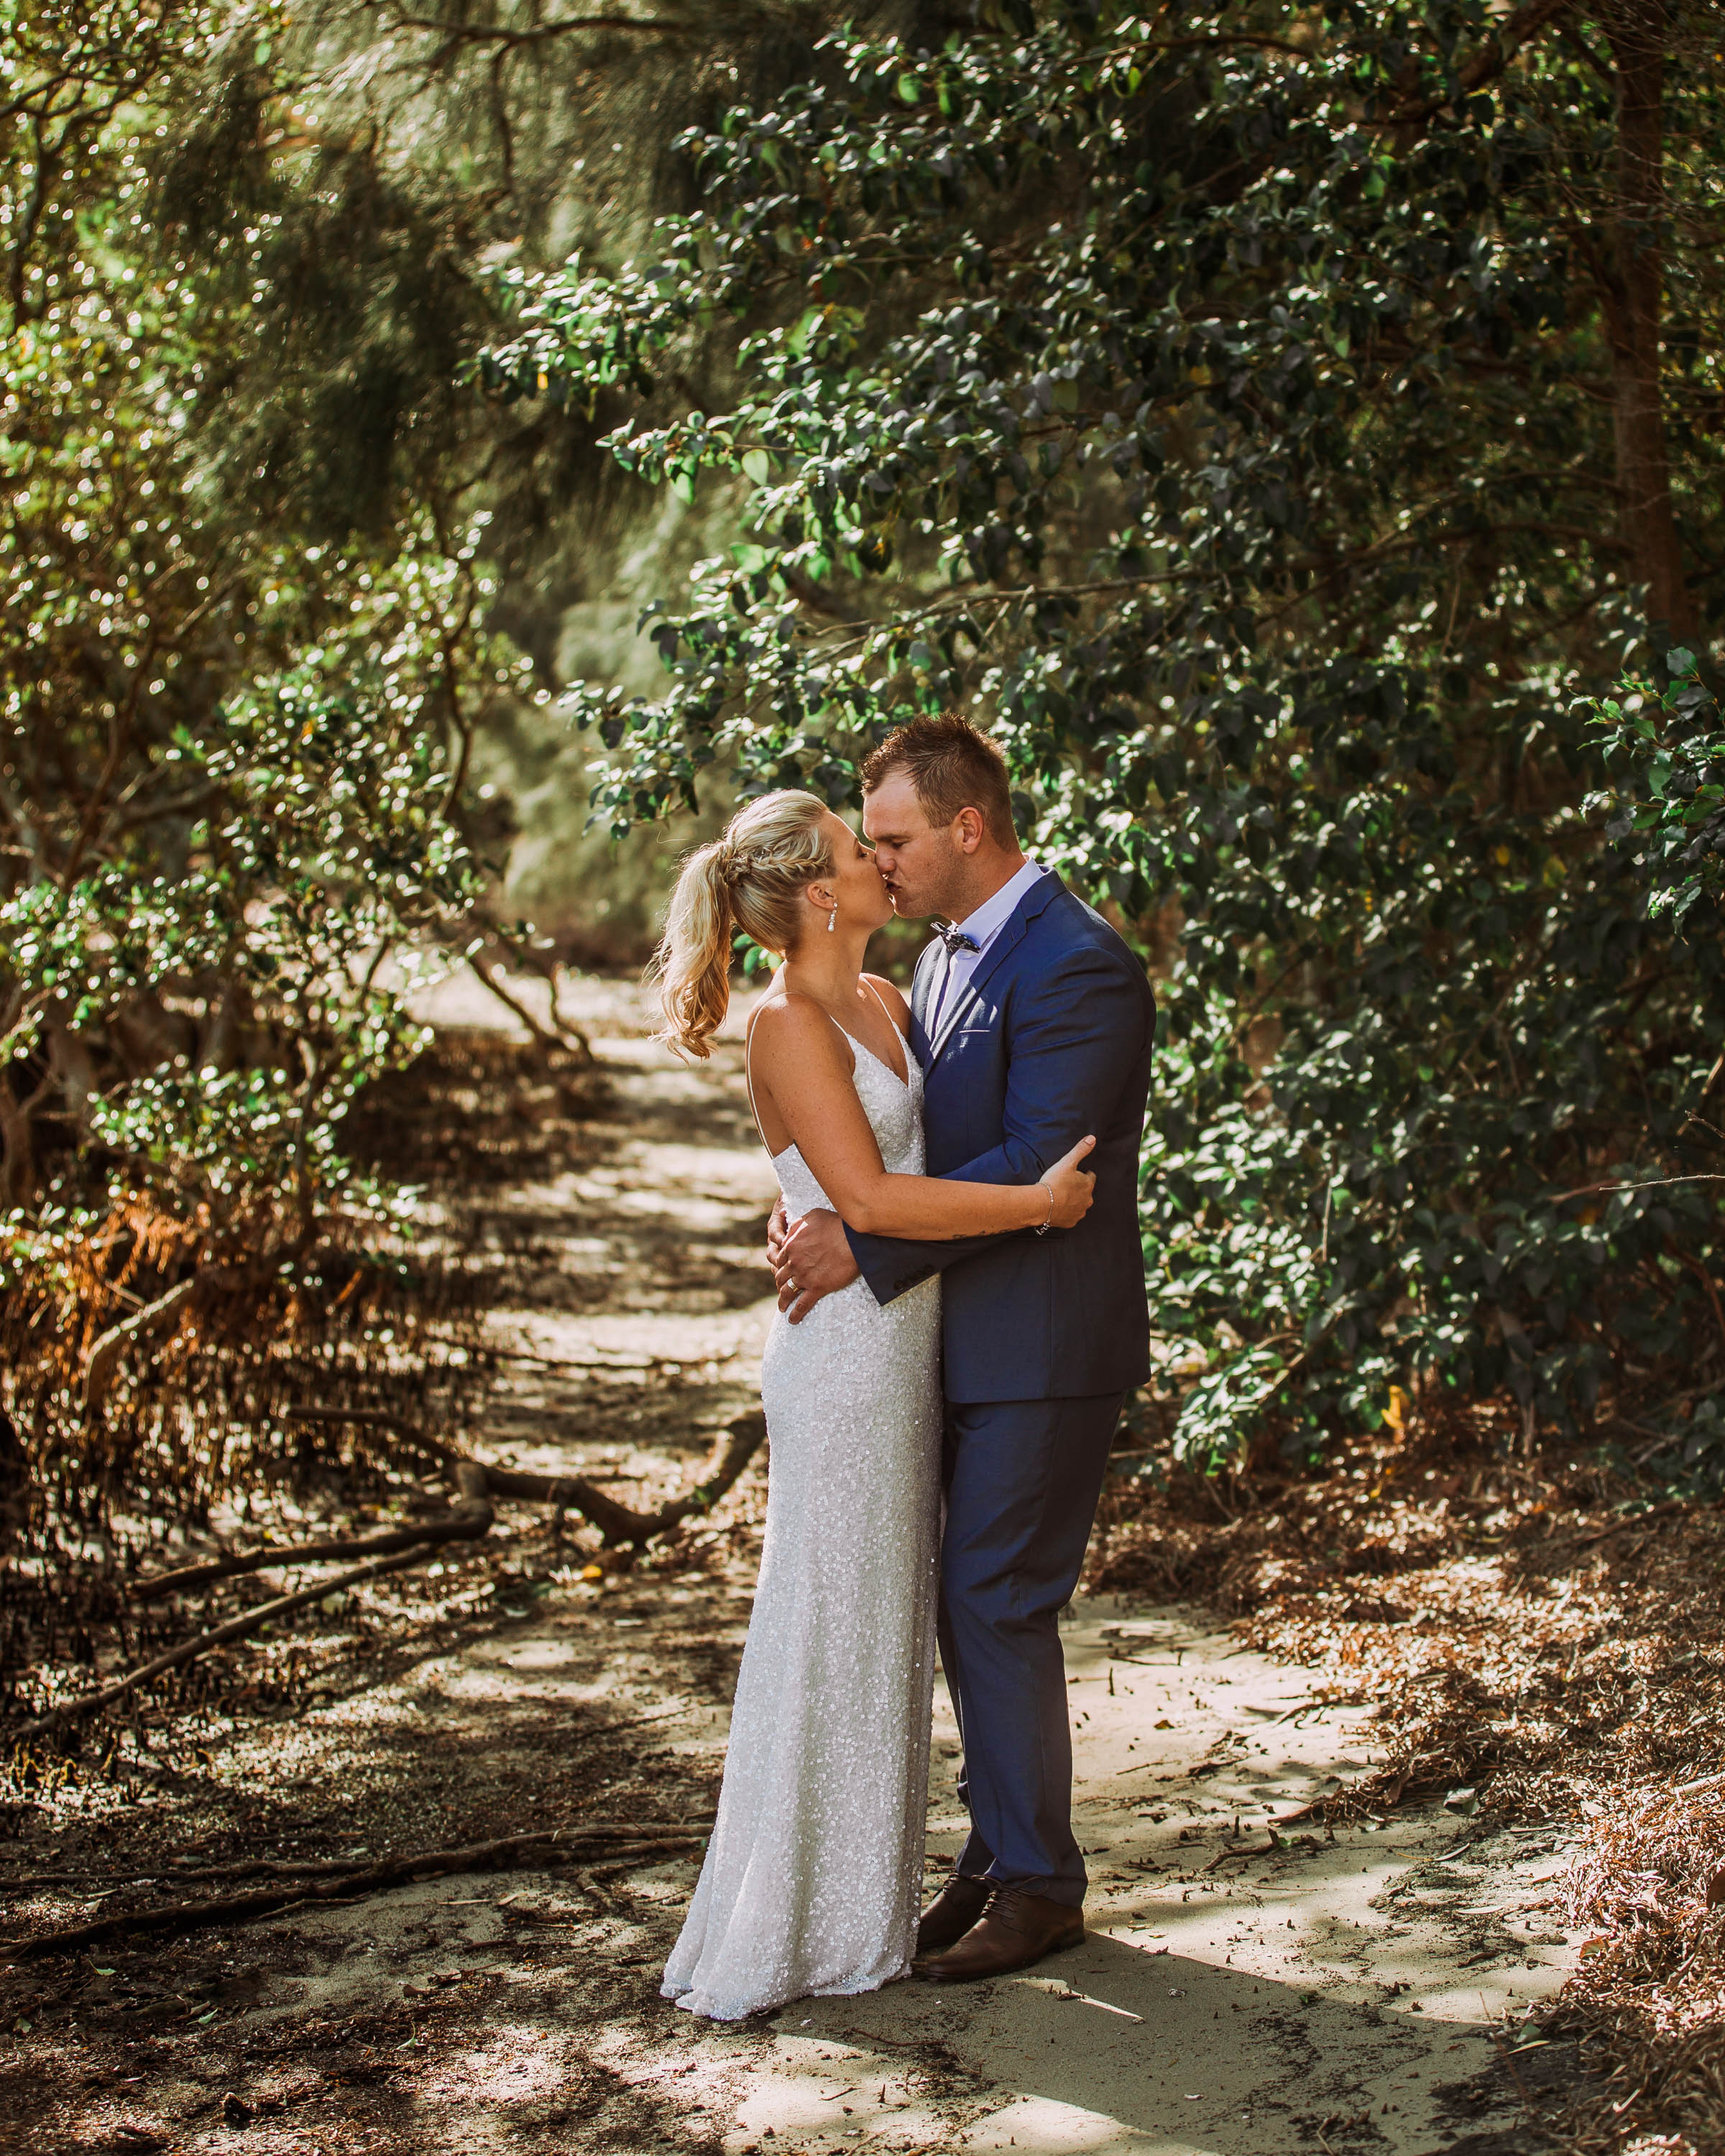 Alicia and James-314.jpg